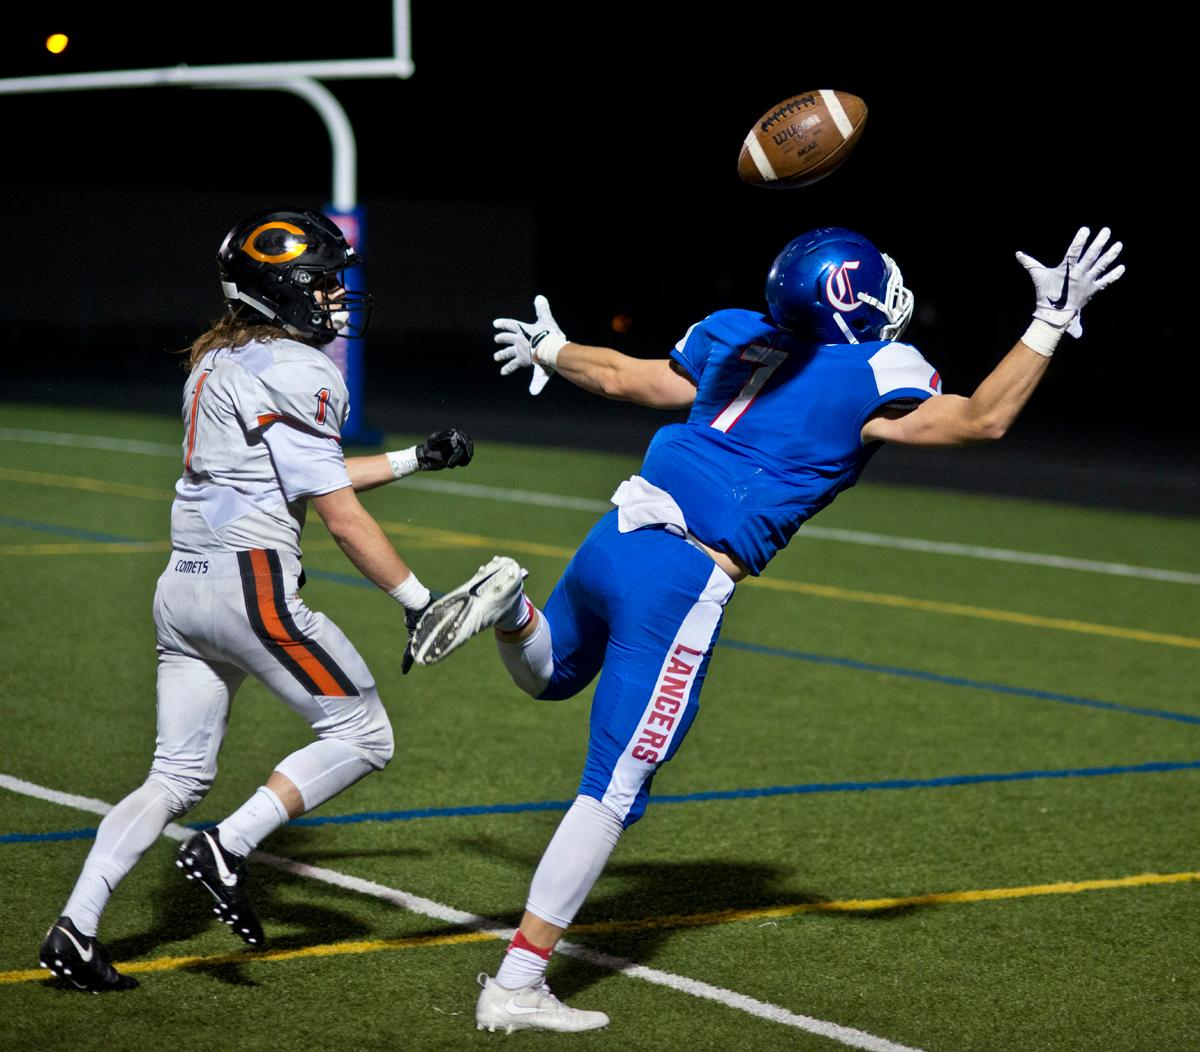 Churchill Lancers wide receiver Aidan Fox (#7) is unable to haul in a pass as Crater Comets defensive back Dylan Kinney (#1) is unable to break up the play. Churchill defeated Crater 63-21 on Friday at their homecoming game. Churchill remains undefeated with a conference record of 9-0. Photo by Dan Morrison, Oregon News Lab